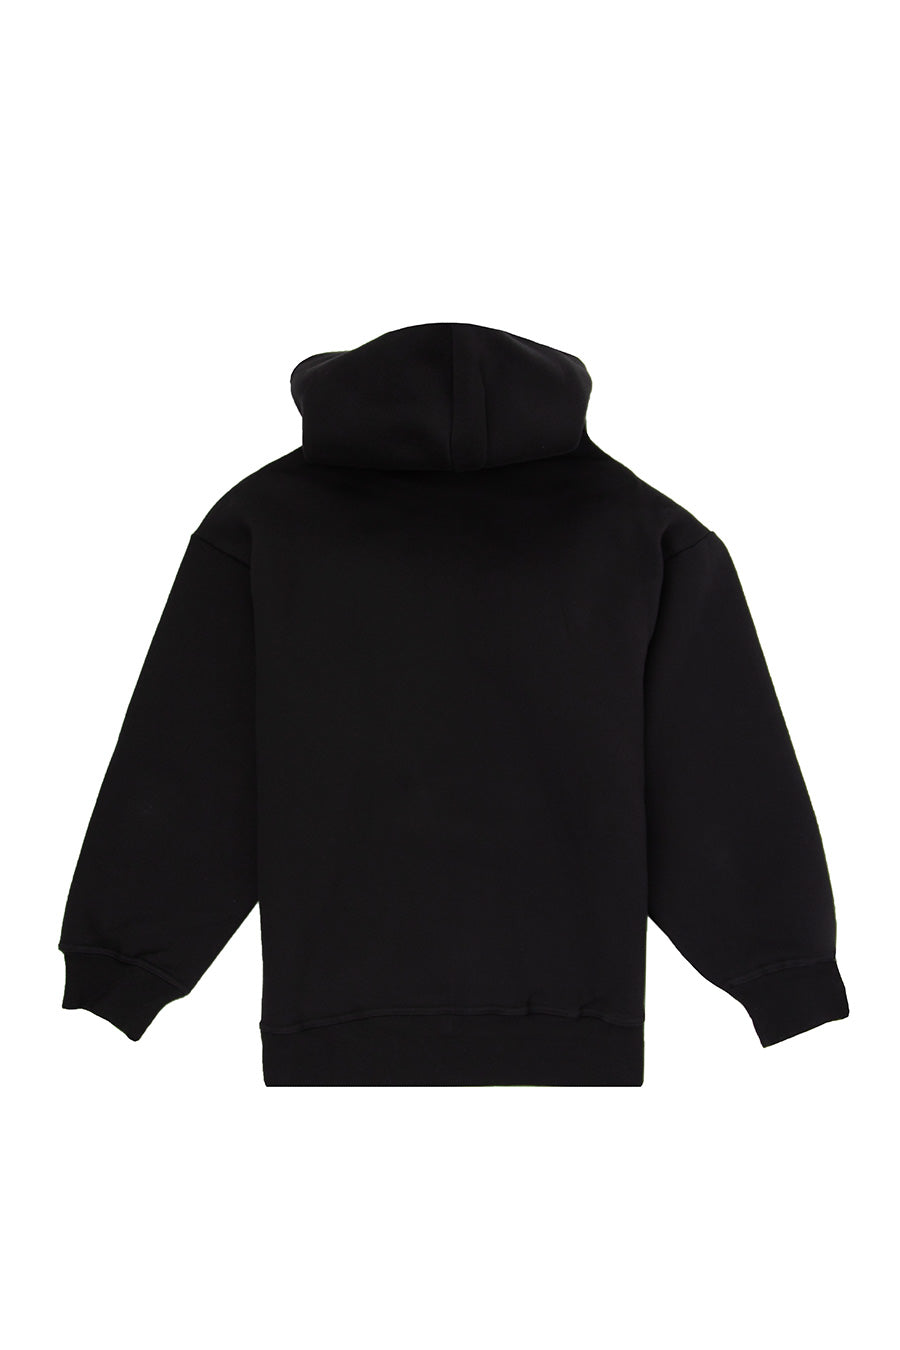 Pleasures - Black Vulgar Hoodie | 1032 SPACE